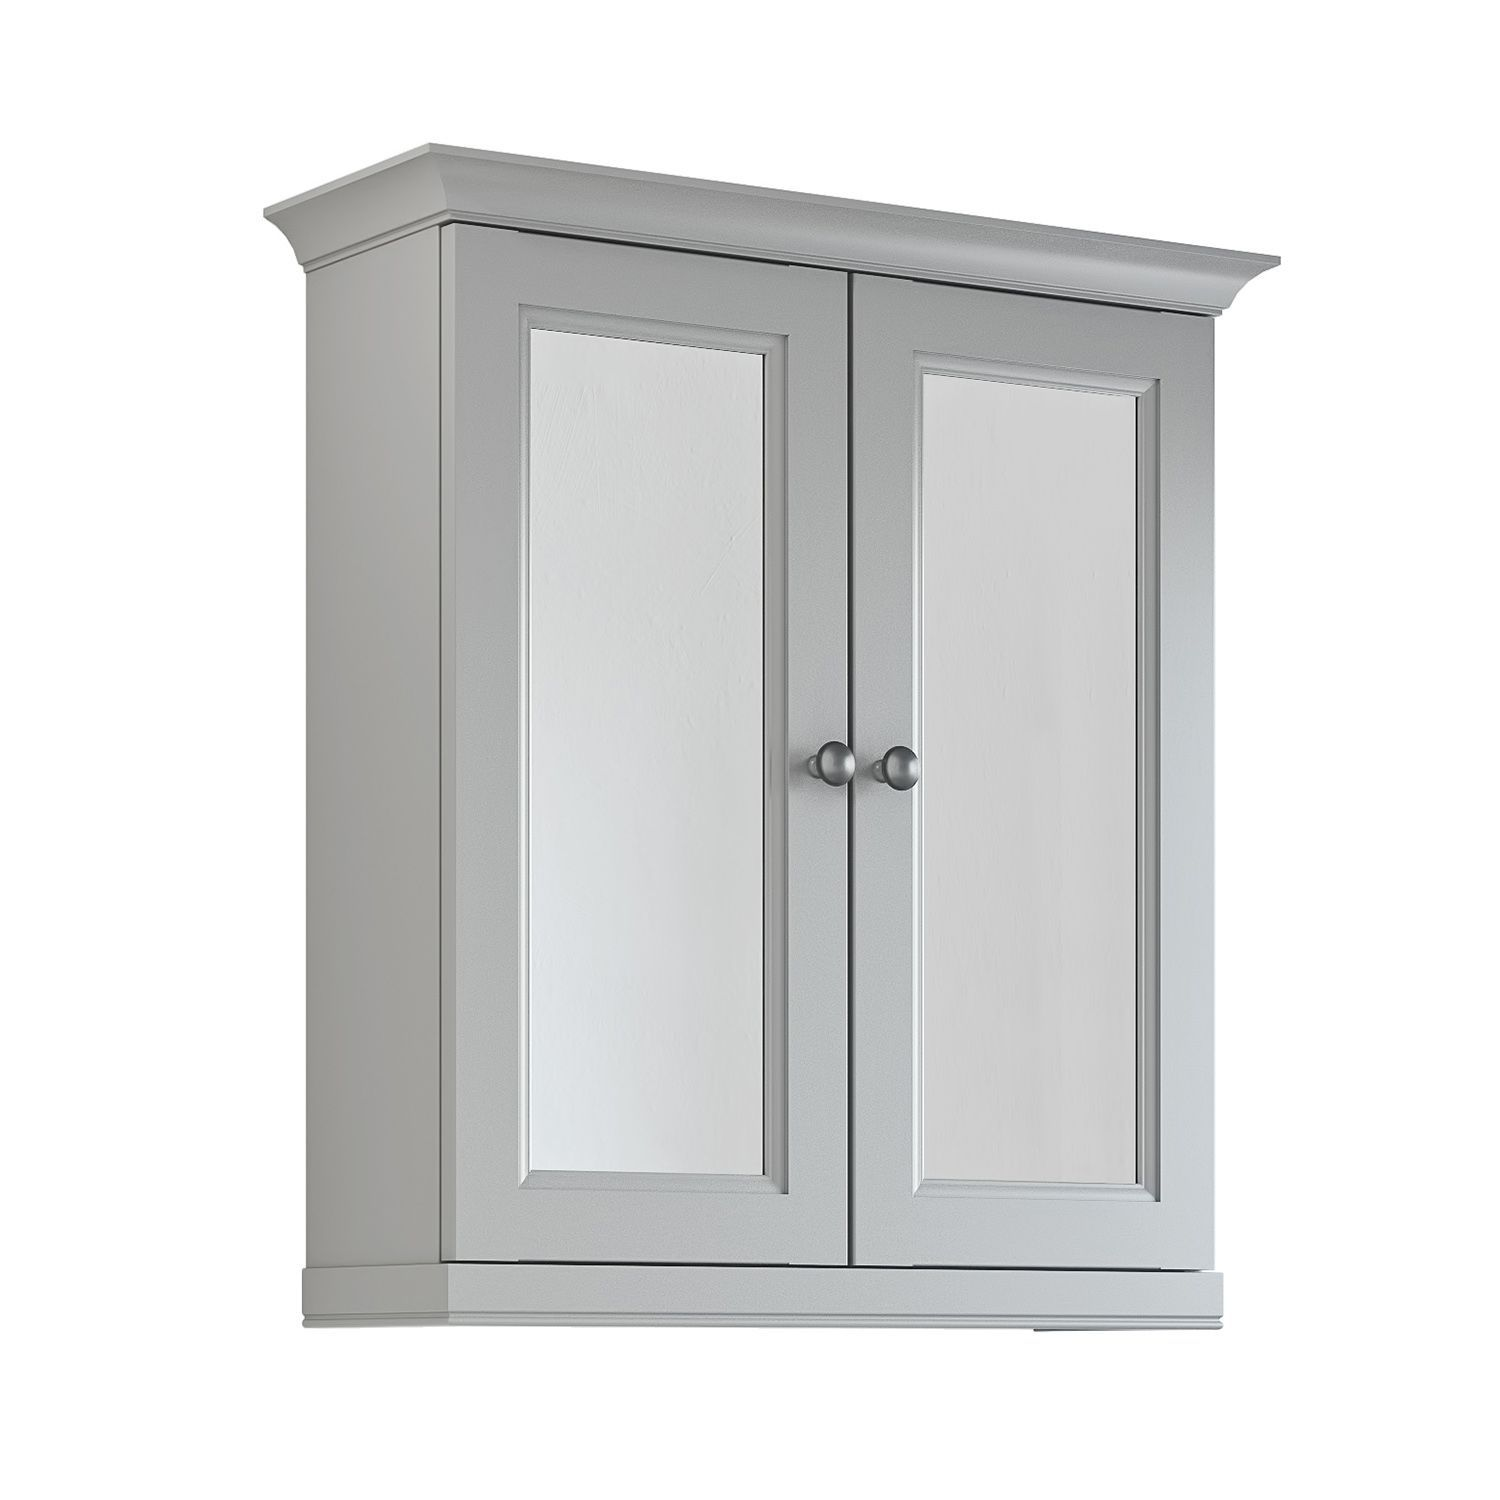 Cooke & Lewis Chadleigh Double Door Light Grey Matt Mirror